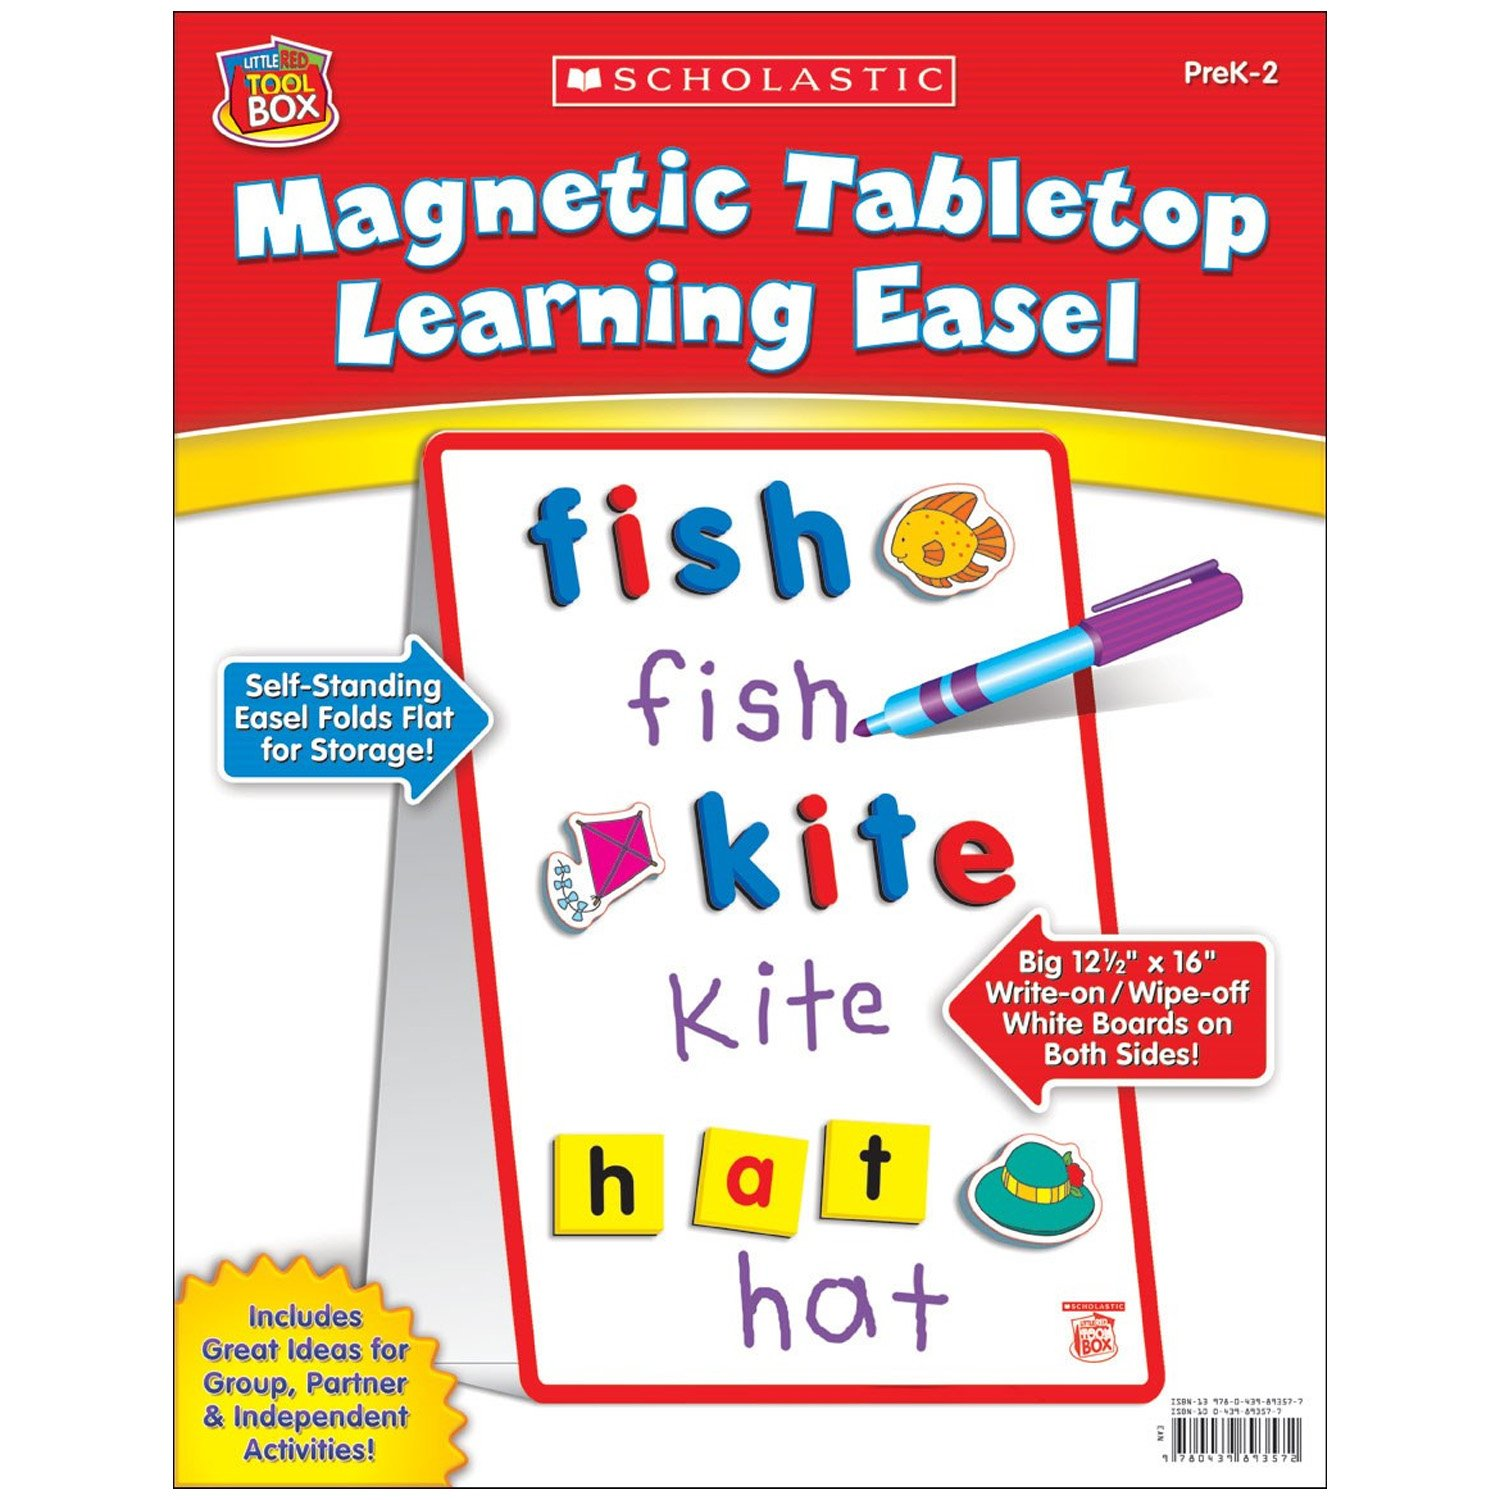 Little Red Tool Box: Magnetic Tabletop Learning Easel